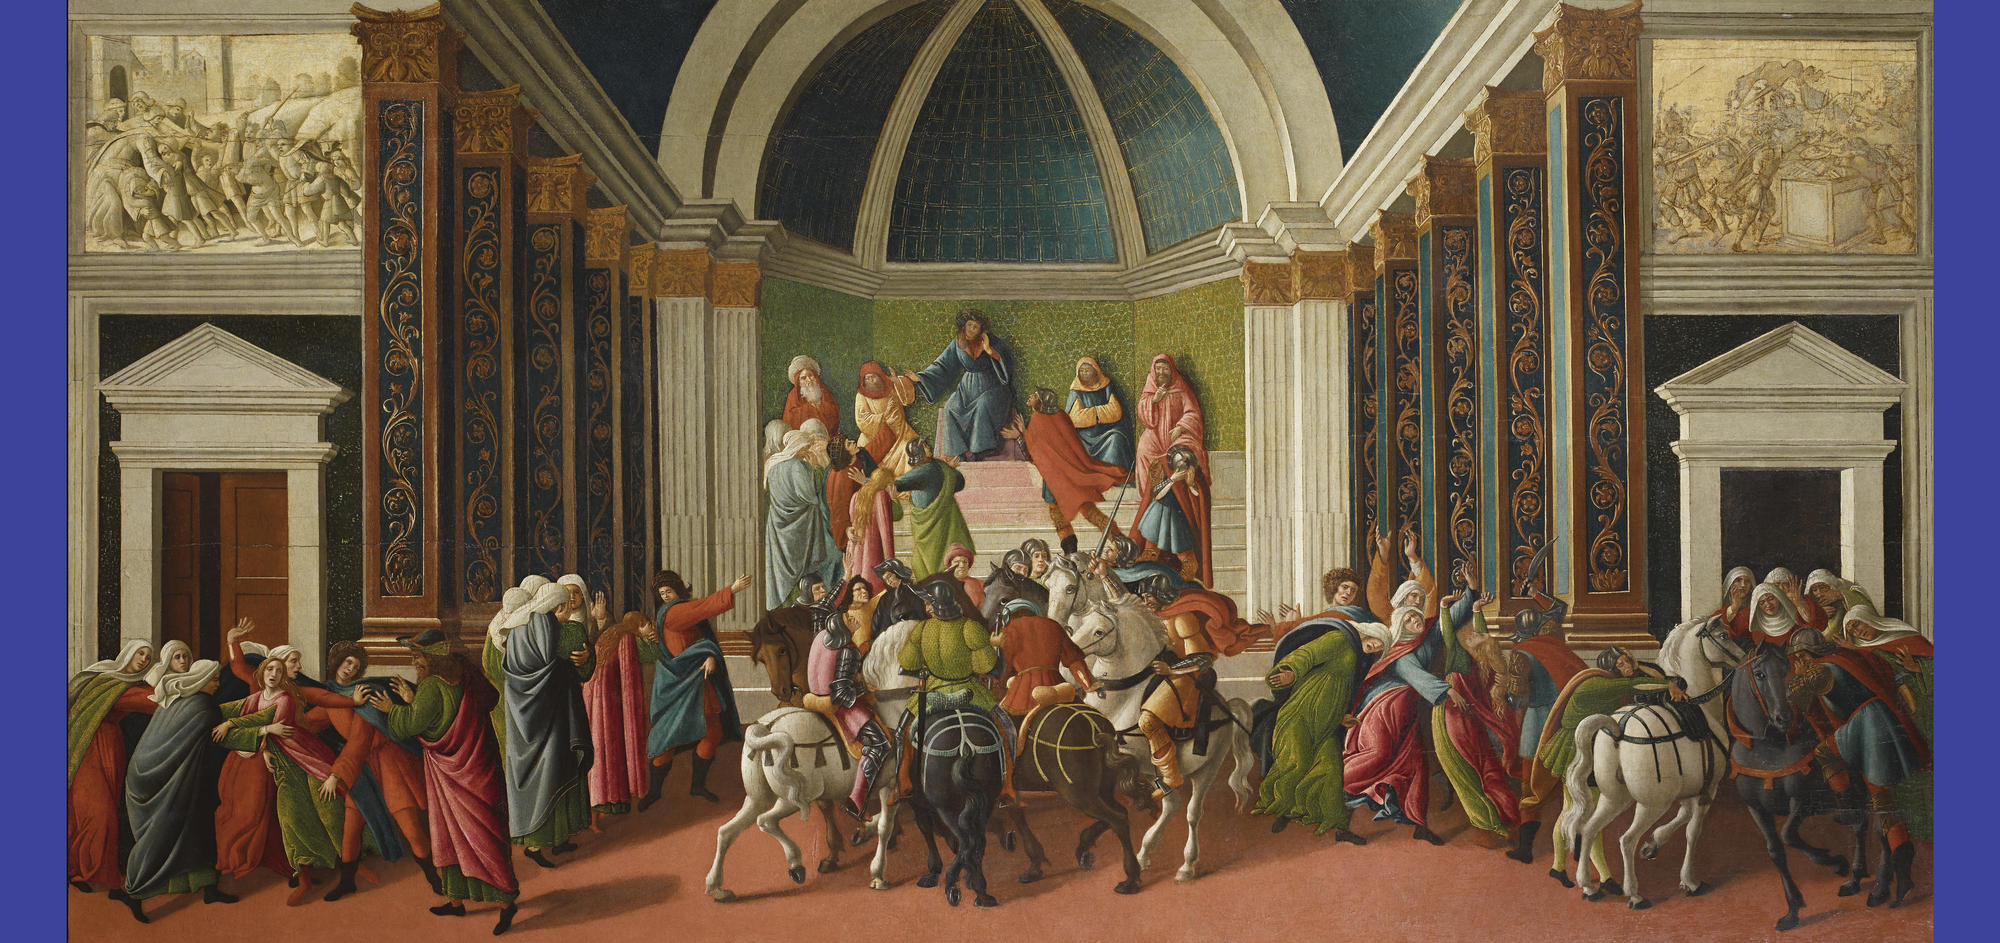 Sandro Botticelli (Italian, 1444 or 1445-1510), The Story of Virginia, about 1500. Tempera and gold on panel, 83.3 x 164.9 cm (32 13/16 x 64 15/16 in.) Accademia Carrara, Bergamo